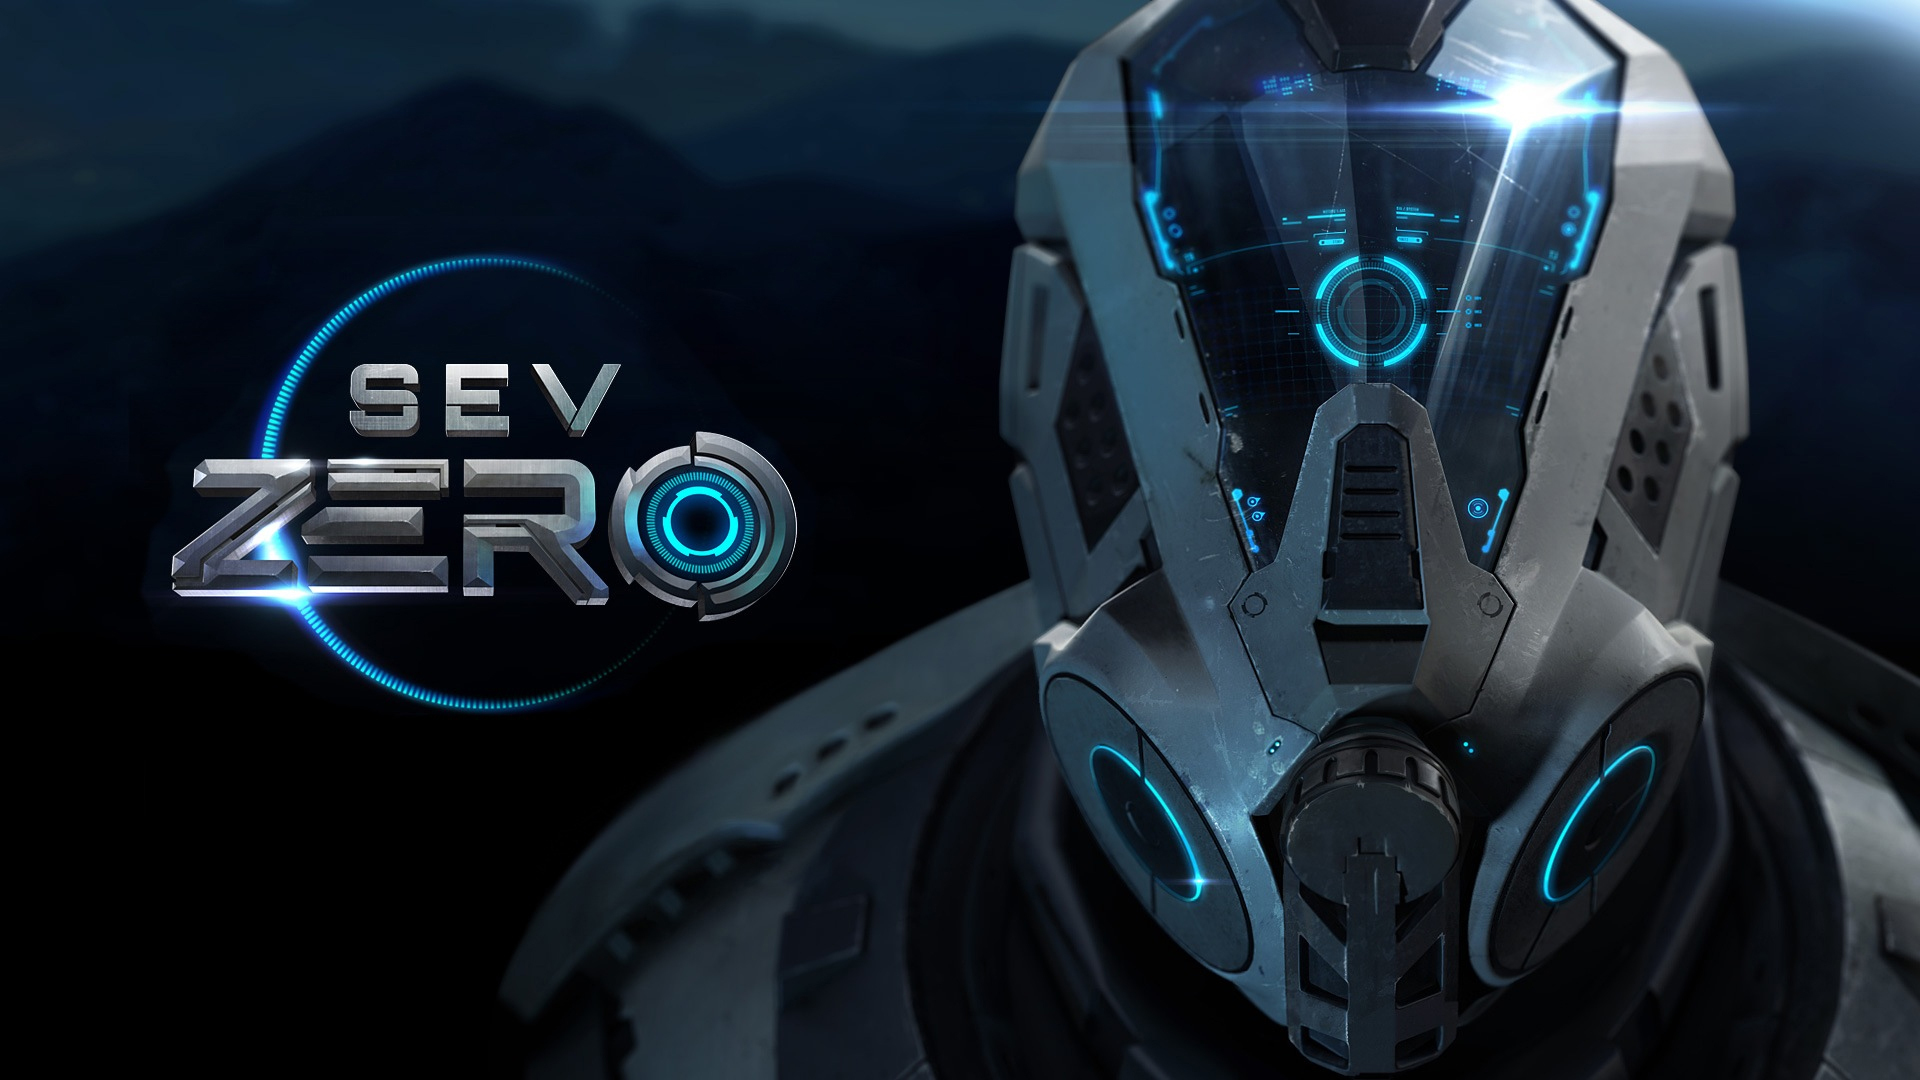 Sev Zero launches exclusively on Fire TV and is the first of a collection of games being built from the ground up for Amazon devices. (Graphic: Business Wire)